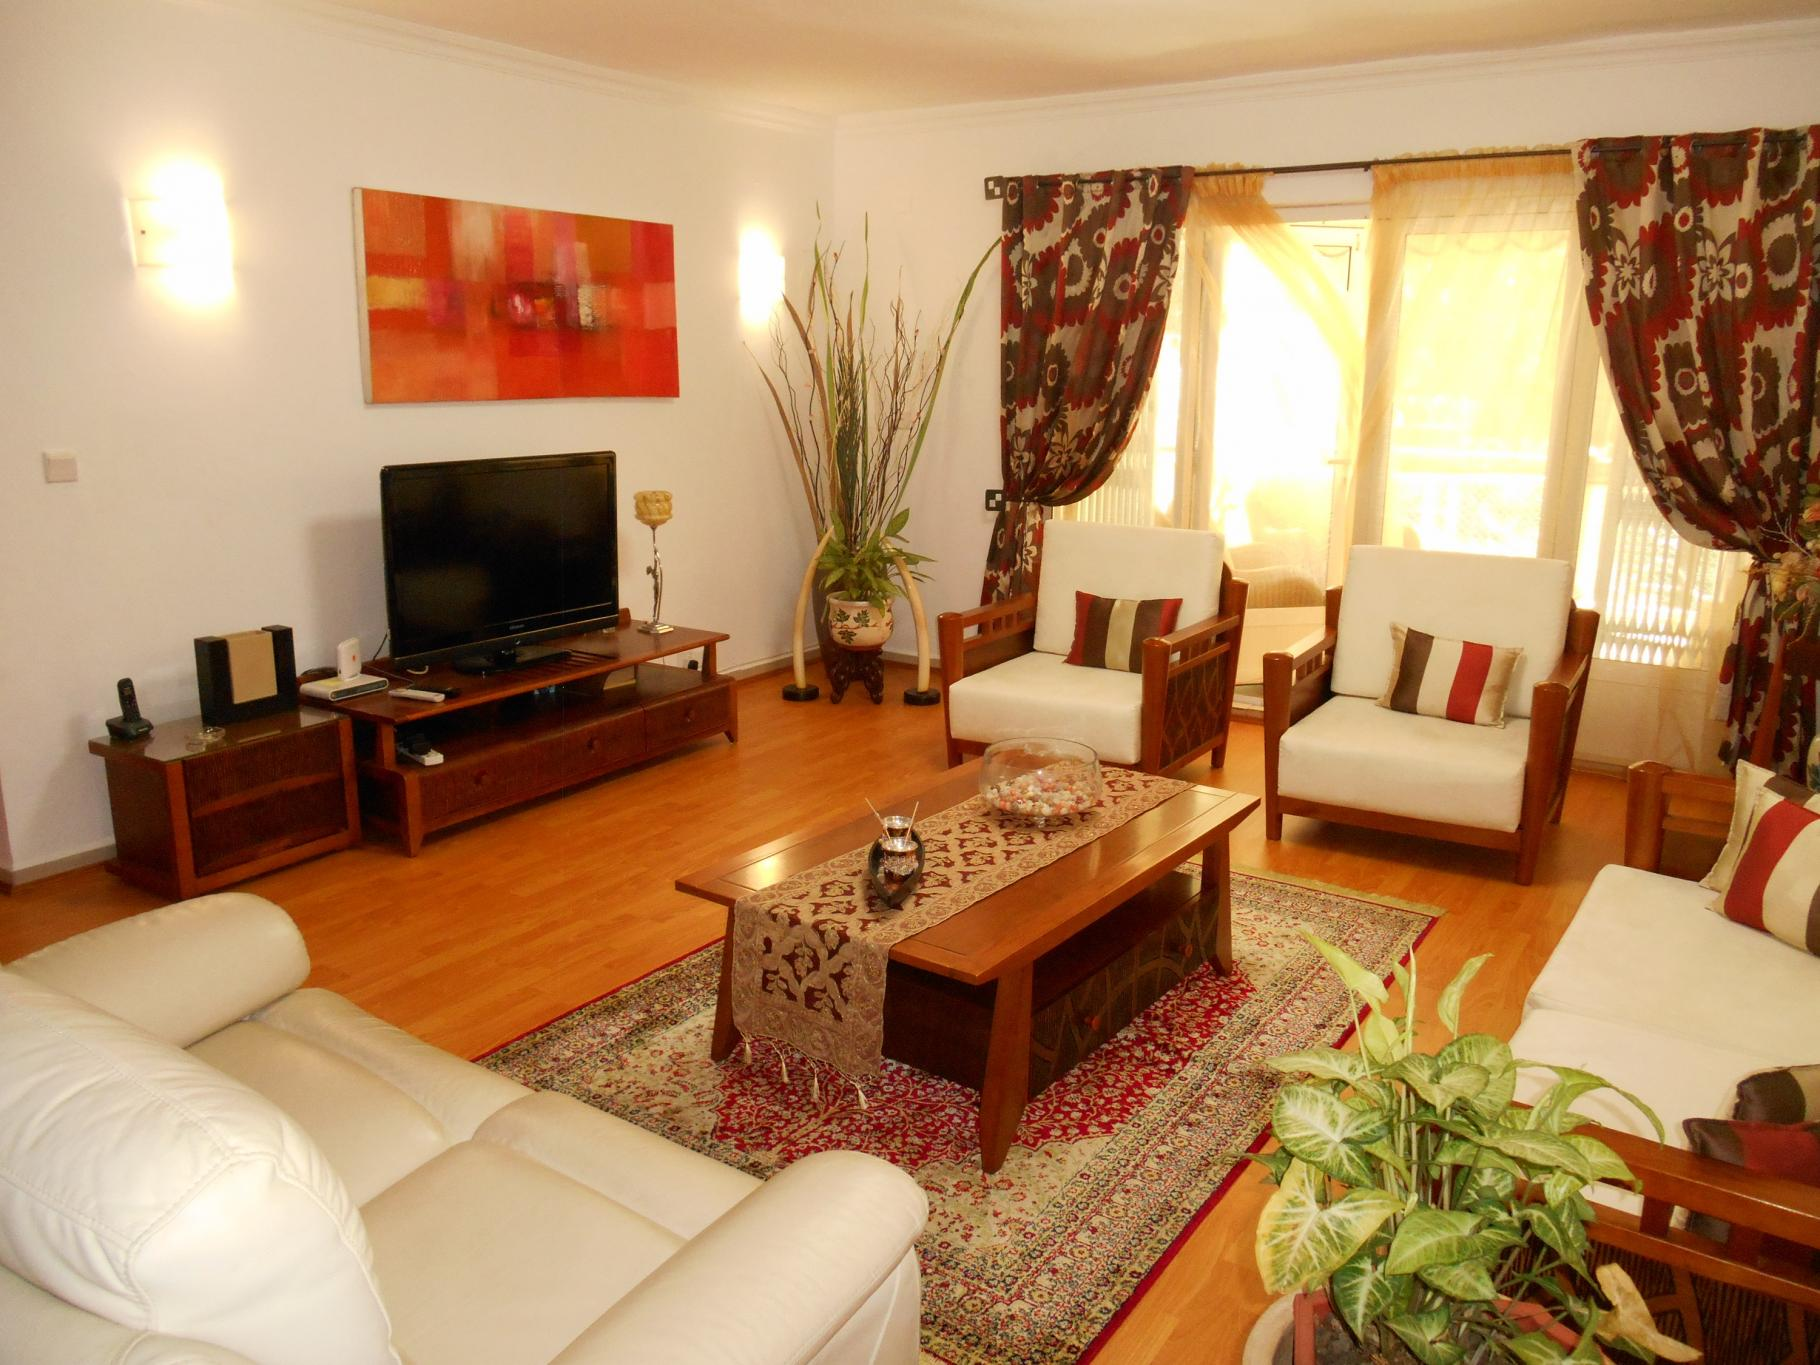 FOR RENT – Beautiful furnished apartment of 204 m2 on the ground floor in a 24/7 secured residence at Trianon.